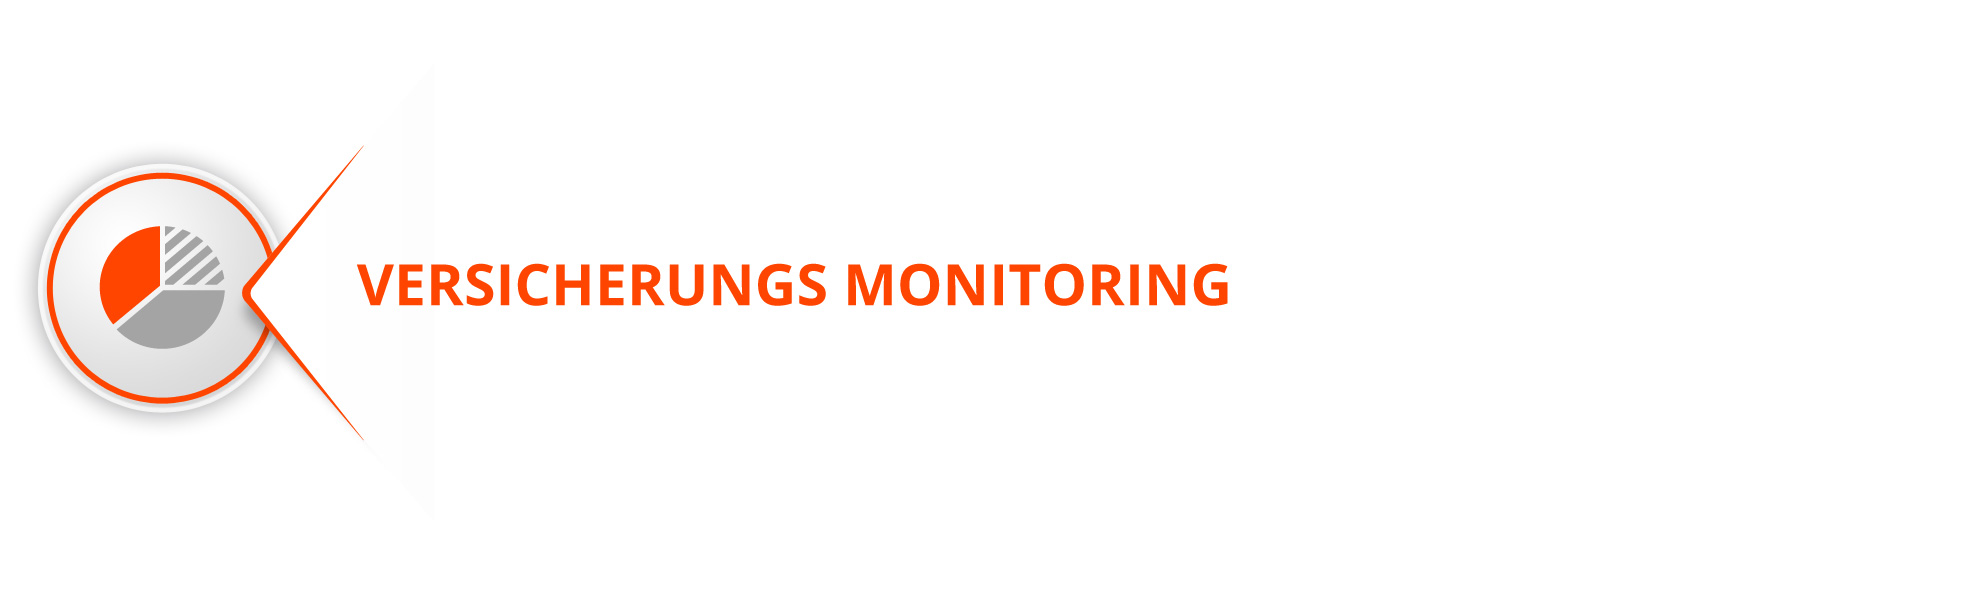 versicherungs-monitoring-azobit